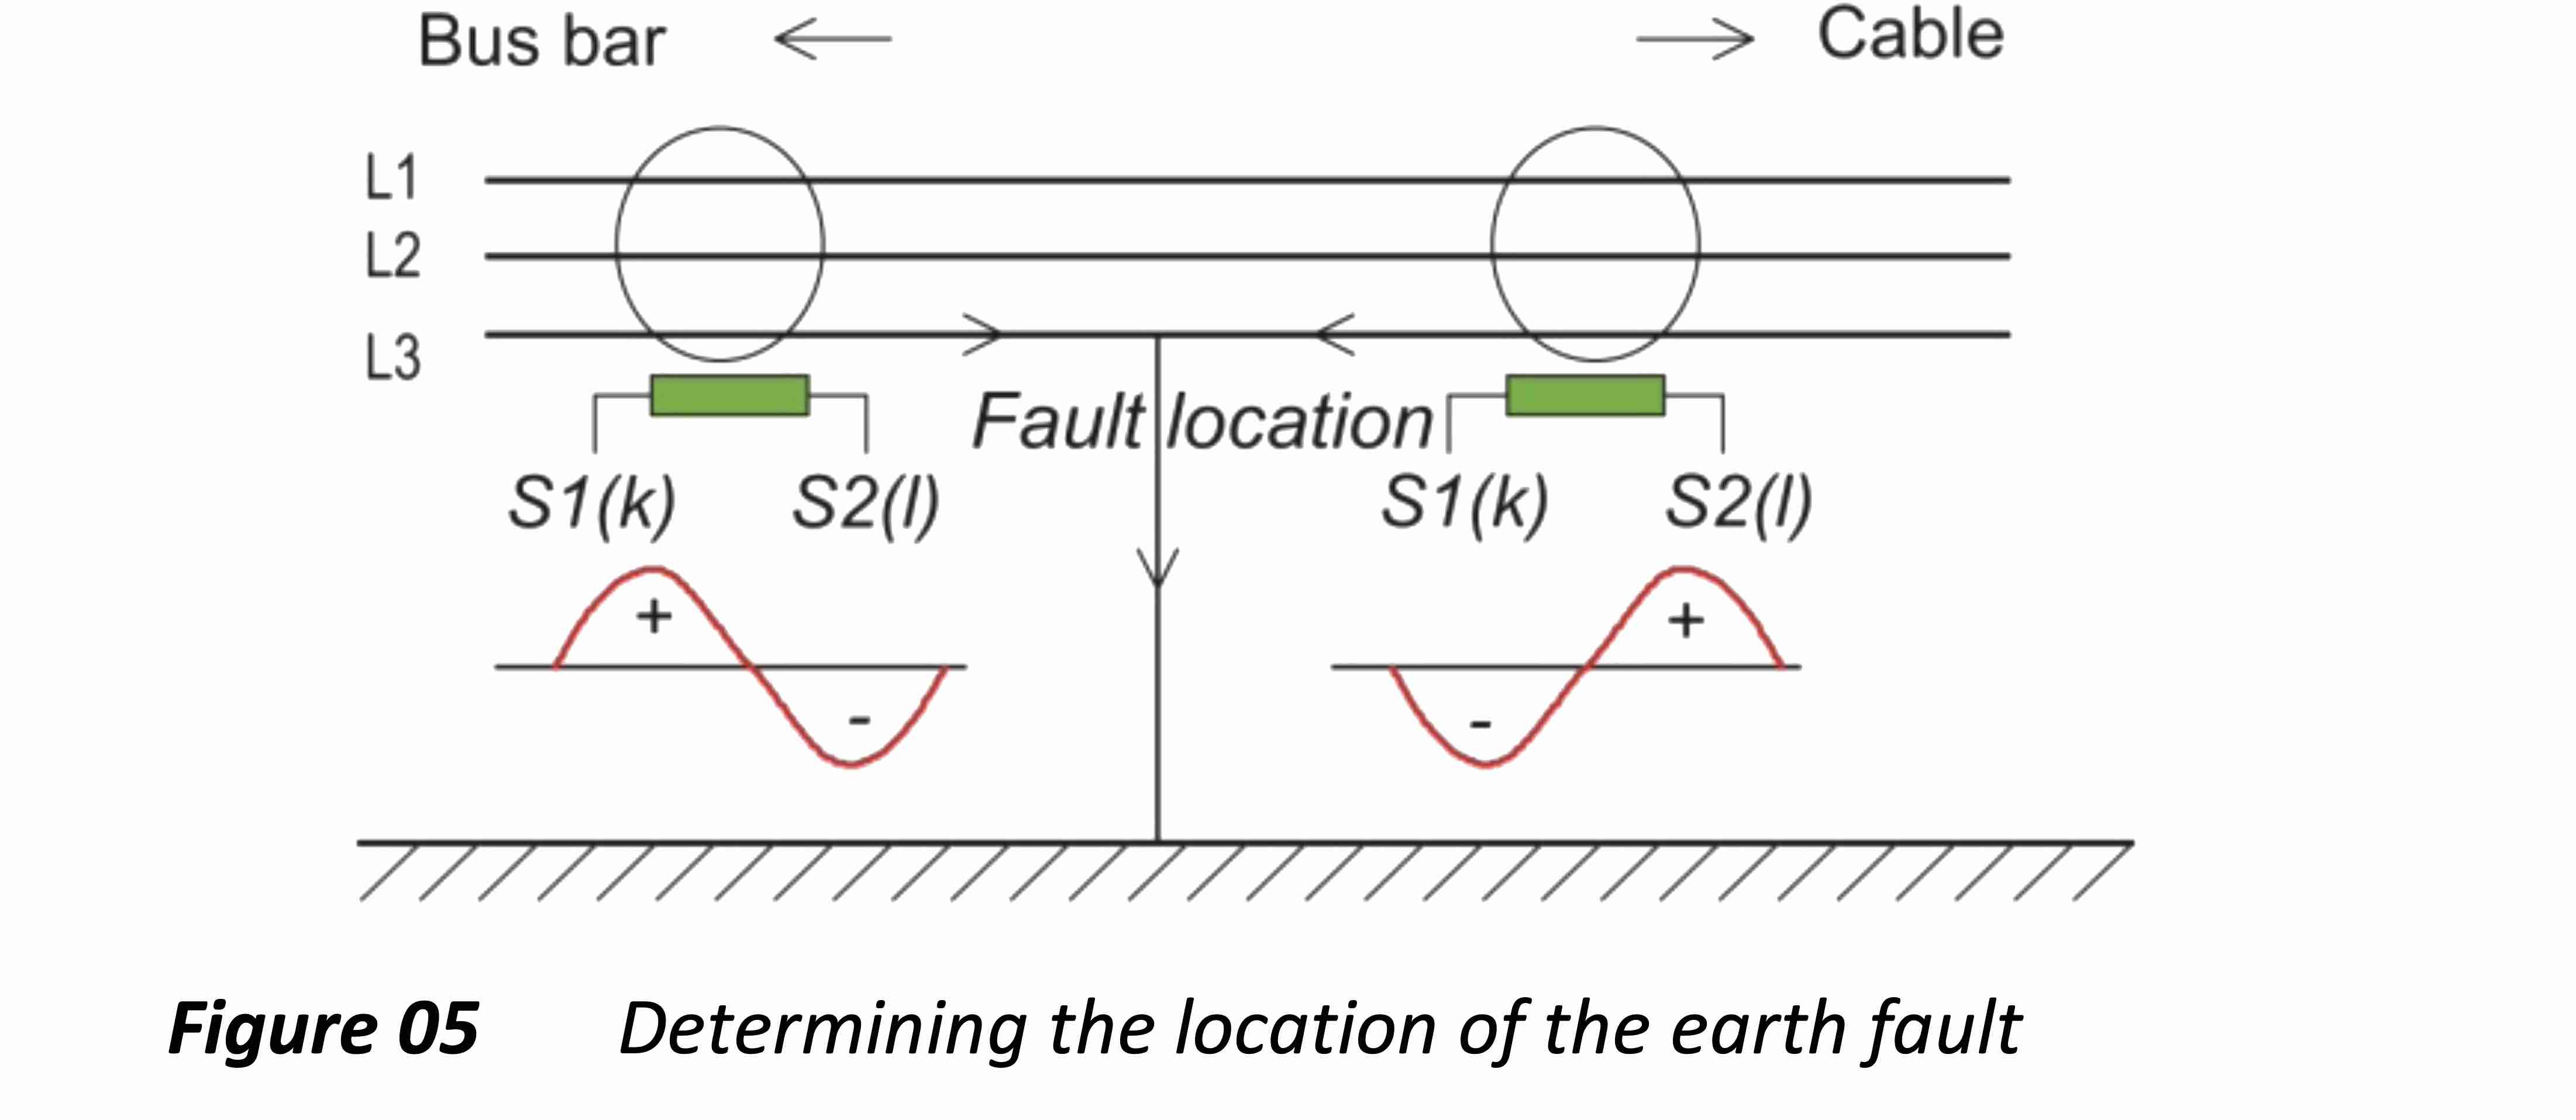 ground fault, earth fault, transient earth fault, transient ground fault, earth fault protection, earth fault detection, ground fault protection ground fault detection